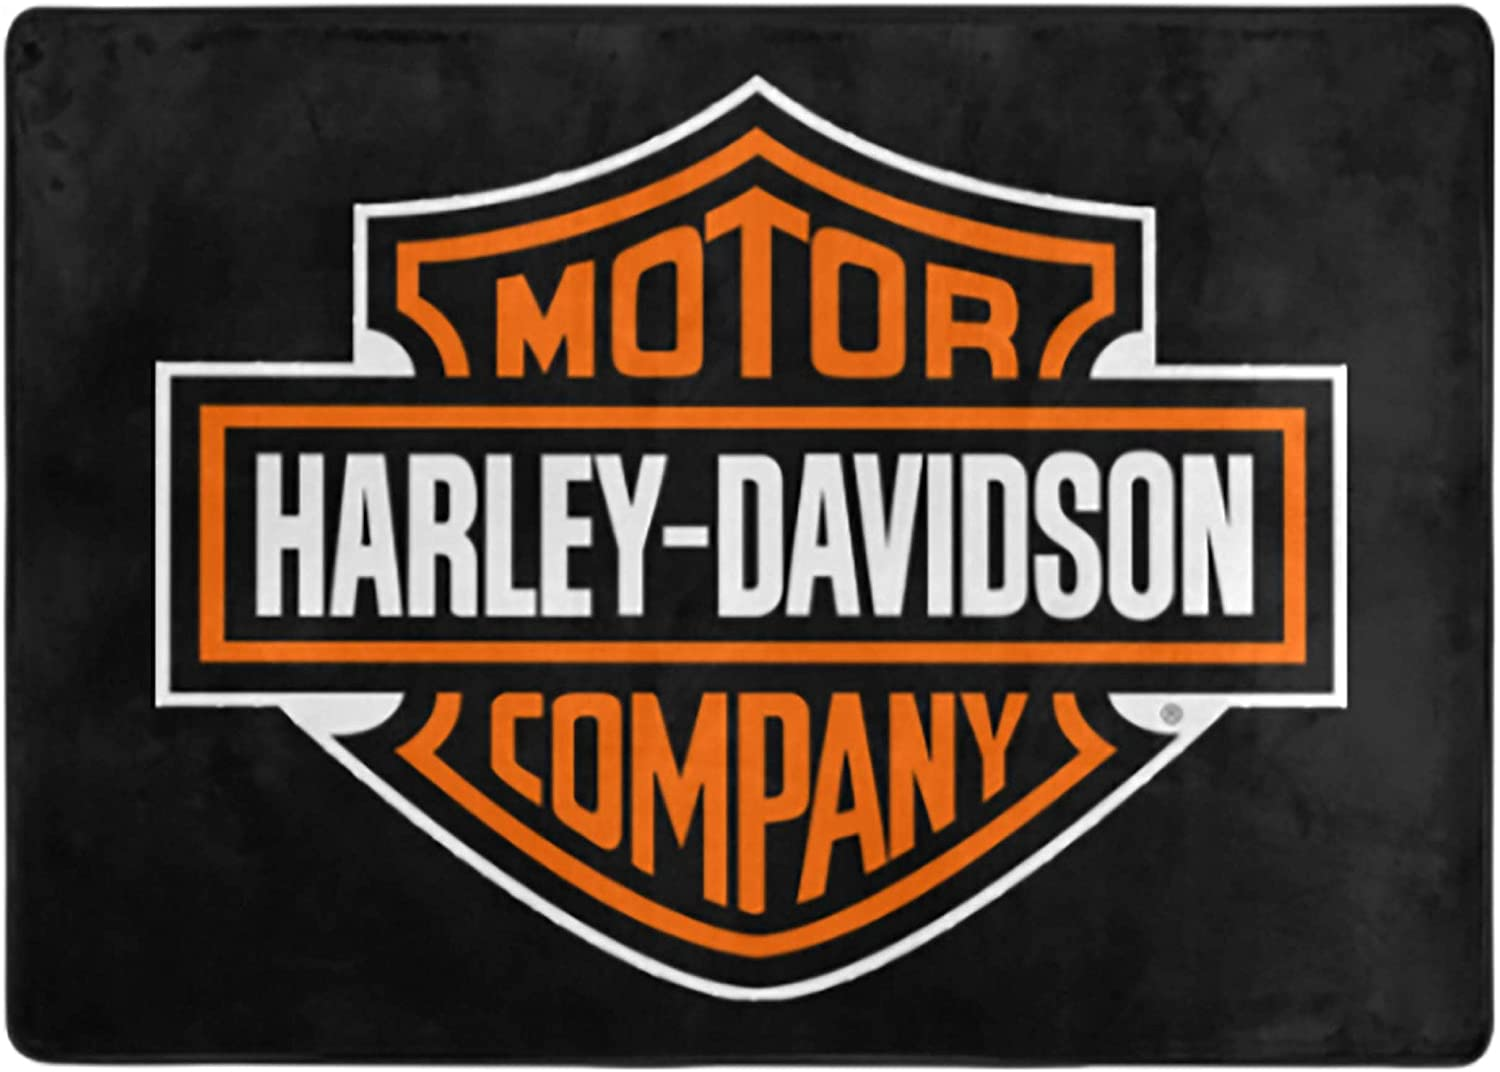 Harley Davidson Super Soft Indoor Modern Shag Area Silky Smooth Fluffy Rugs Anti-Skid Shaggy Area Rug Dining Room Home Bedroom Carpet 84X60 in